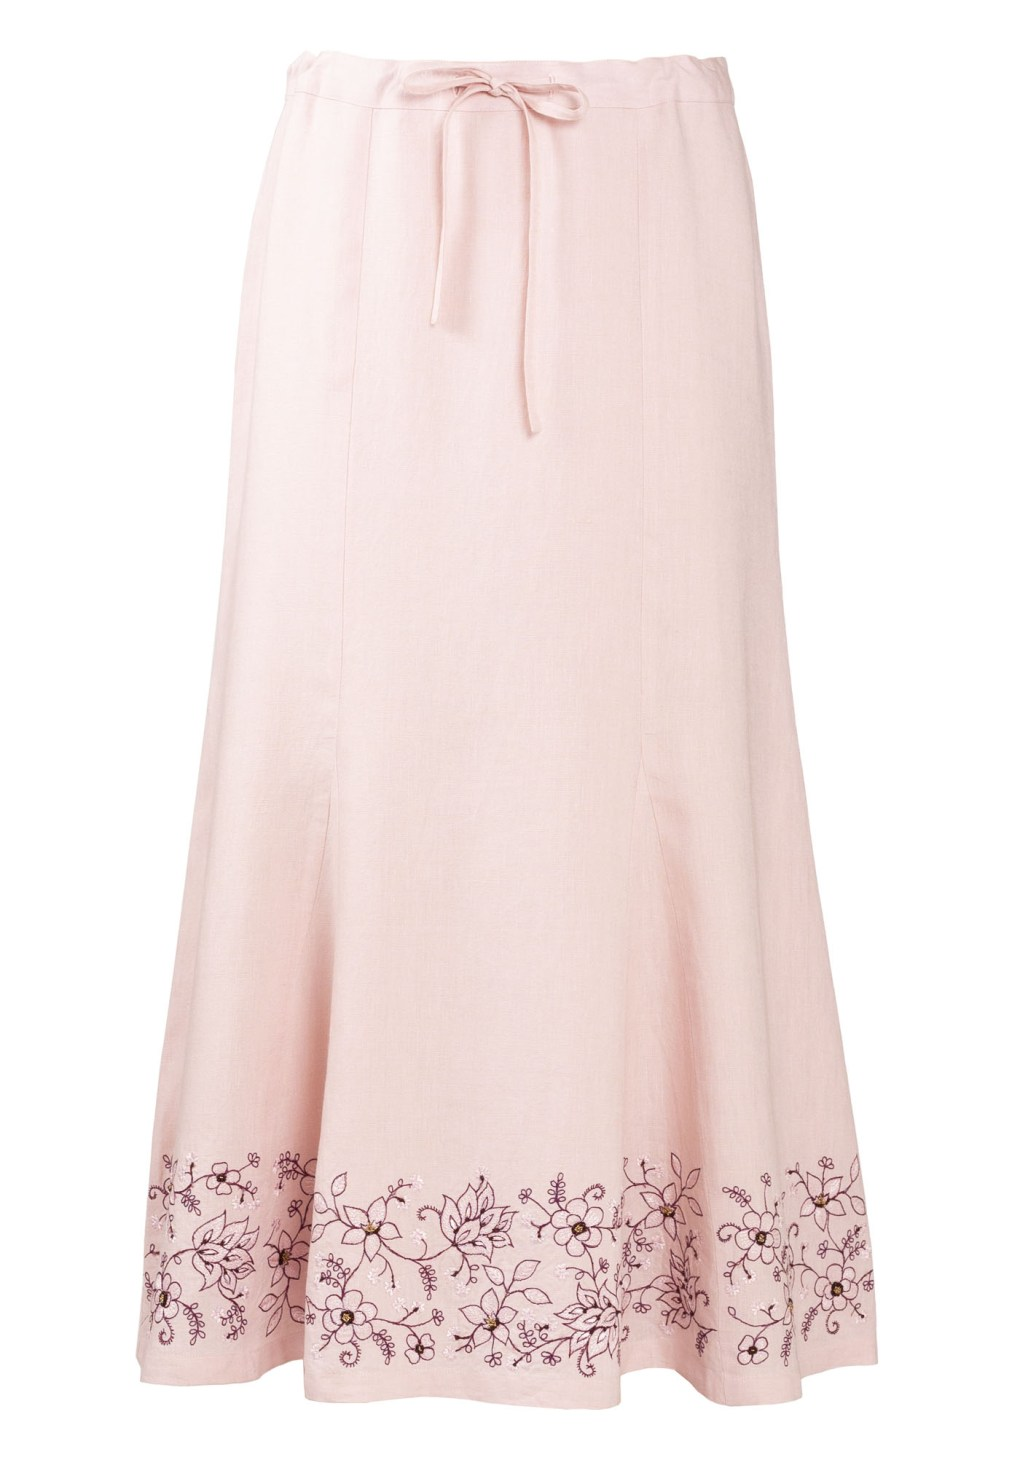 MINC womens ecofashion Ankle Length Embroidered Skirt in Pearly Pink Linen